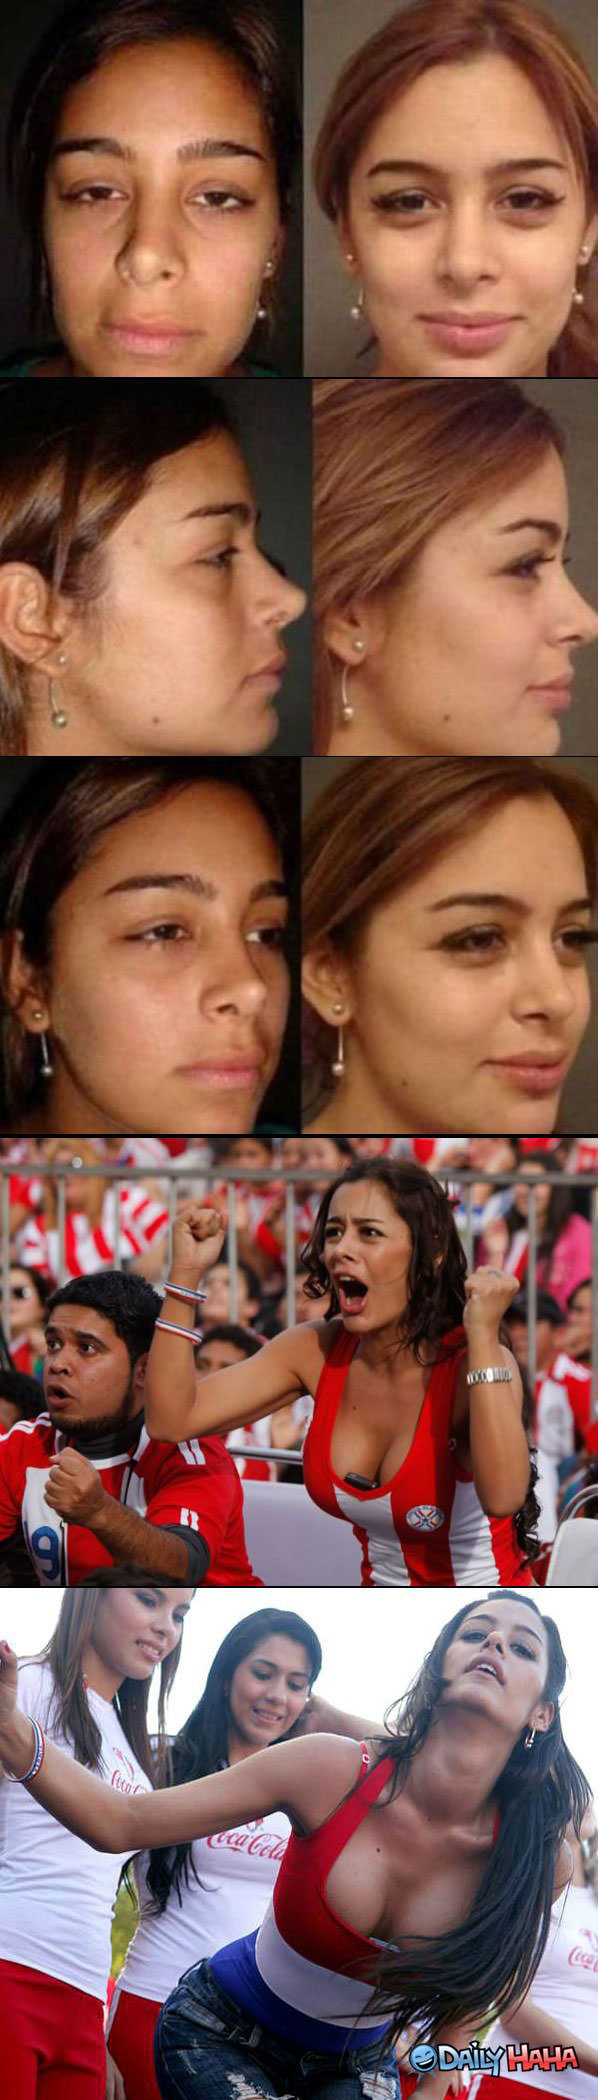 Larissa Riquelmes New Look funny picture